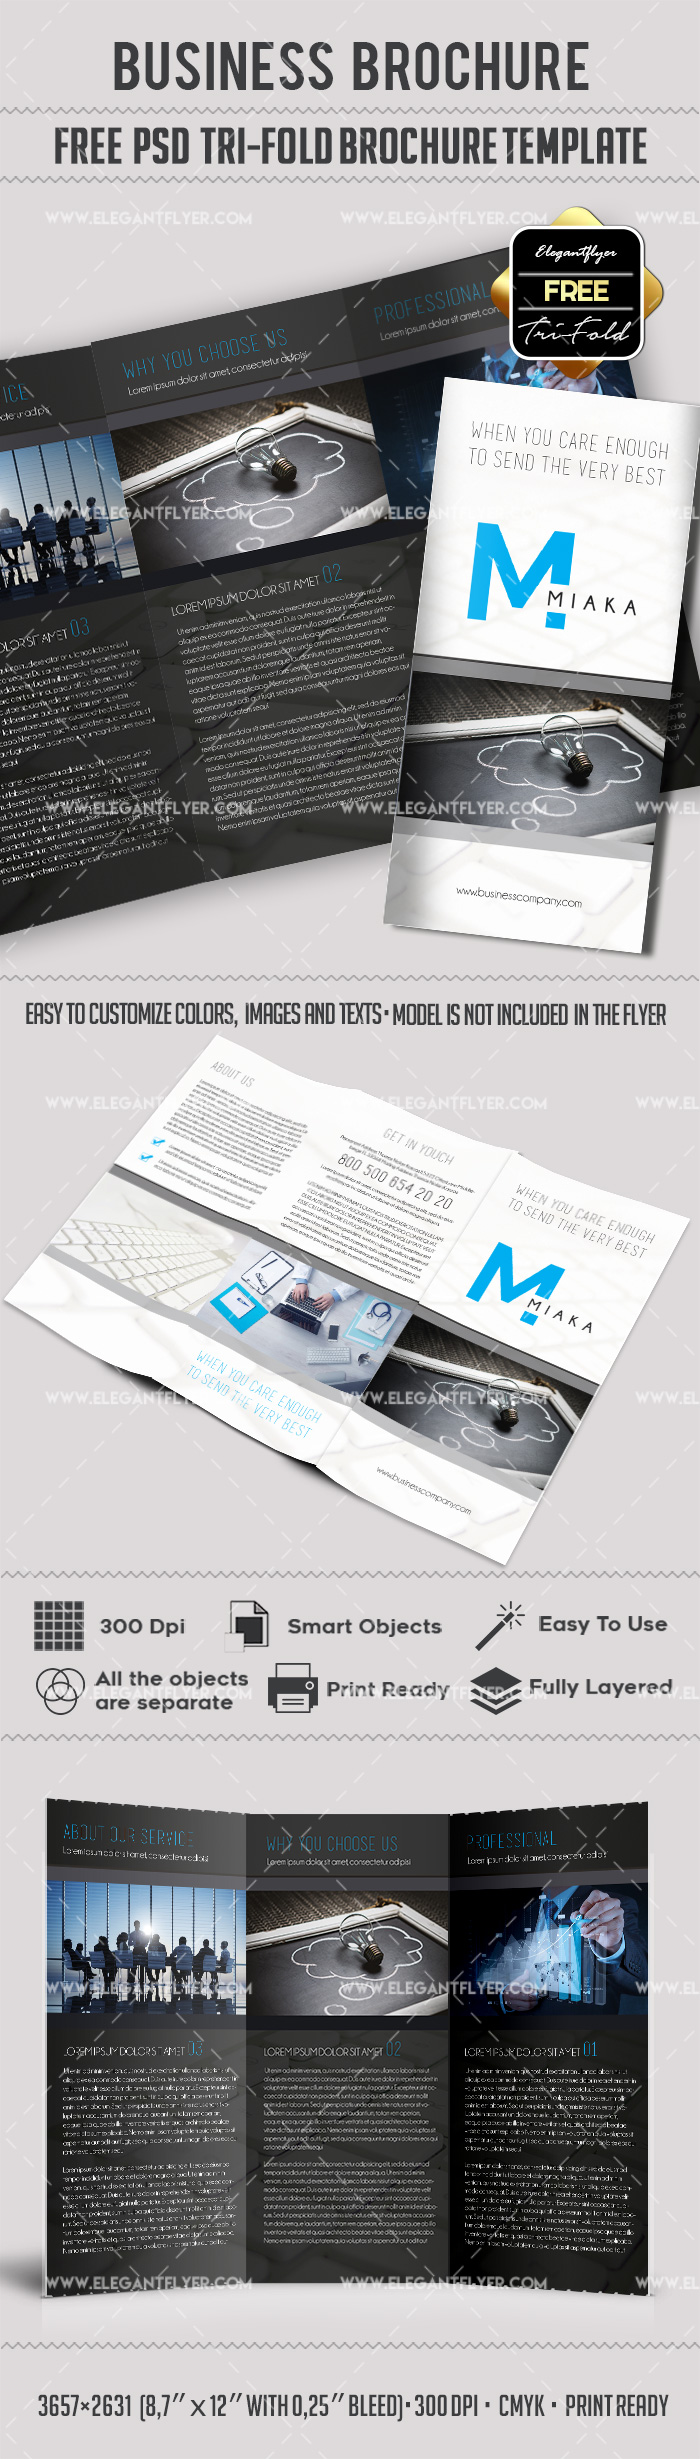 Tri fold brochure templates free download by elegantflyer for Tri fold brochure templates free download